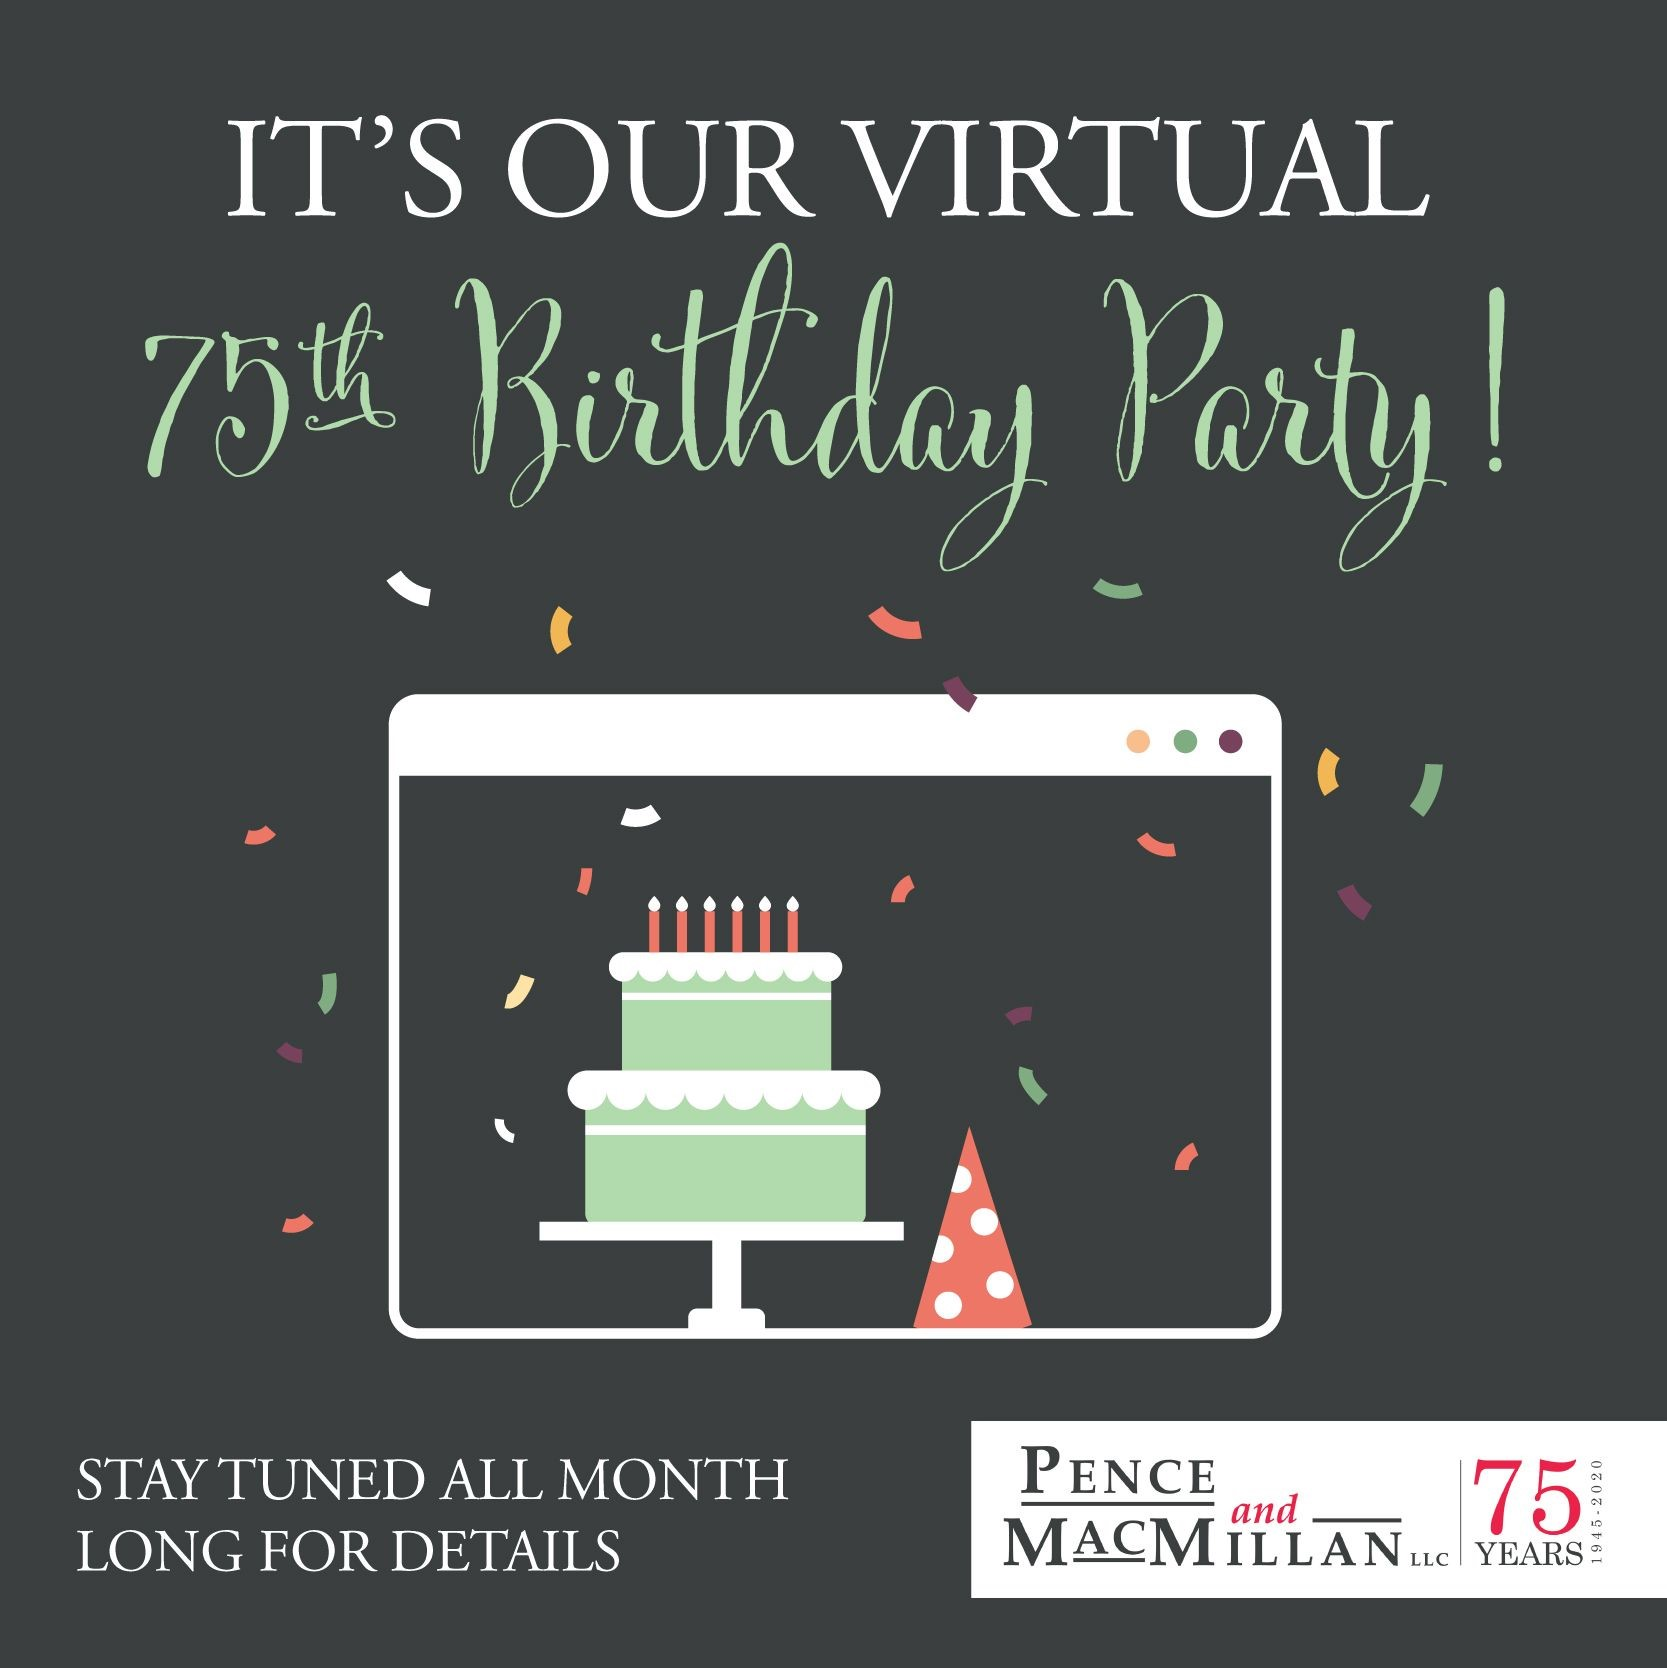 It's our virtual 75th birthday party! Stay tuned all month long for details.